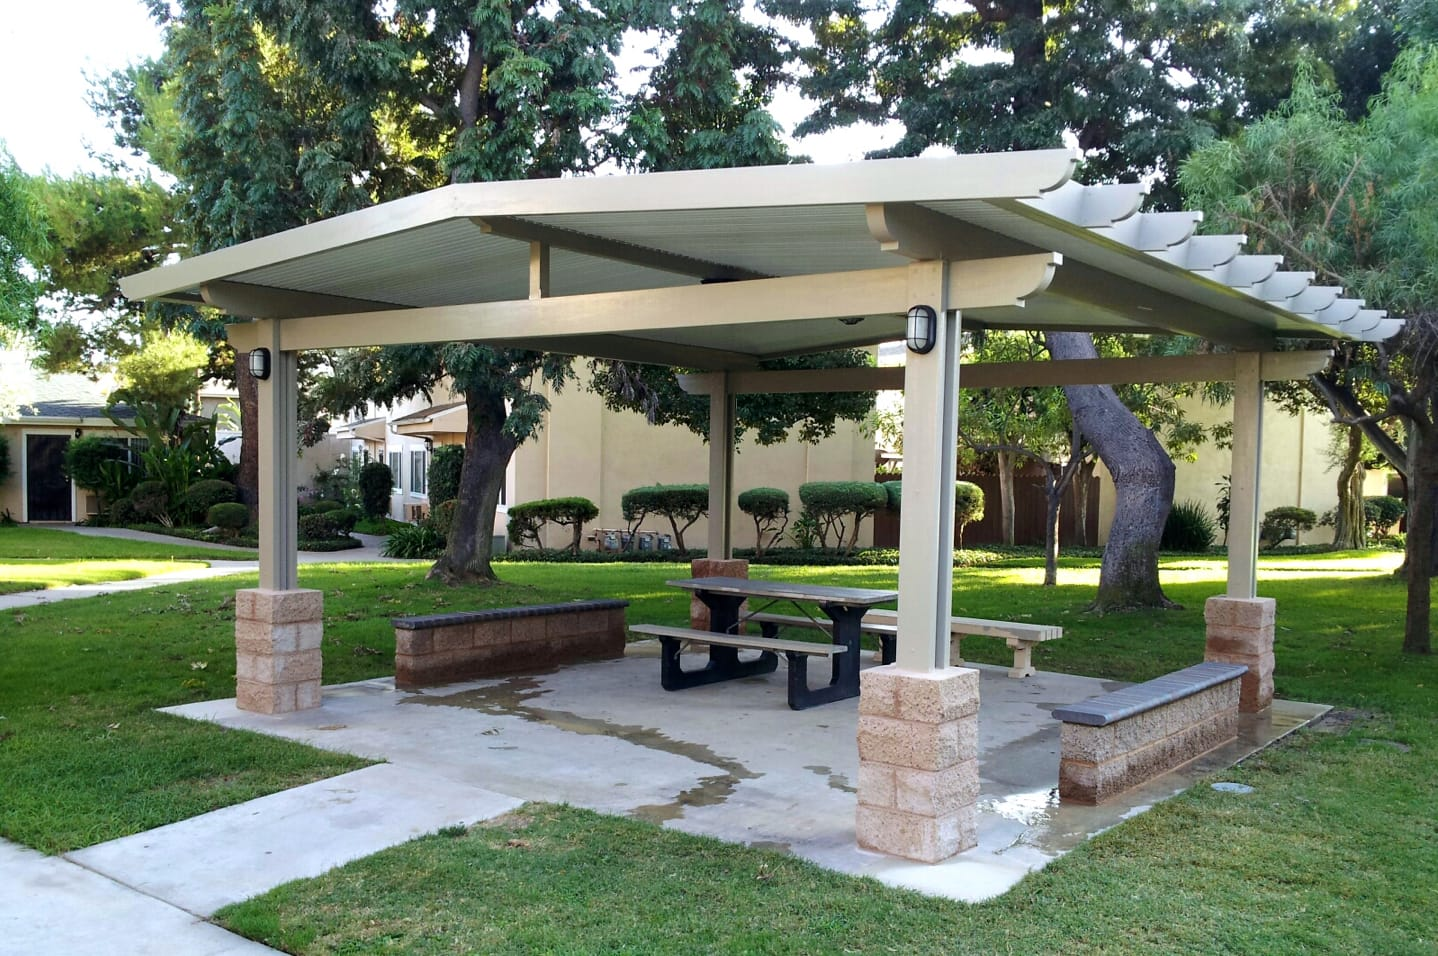 Alumashade DIY Solid Insulated Patio Cover in a Park